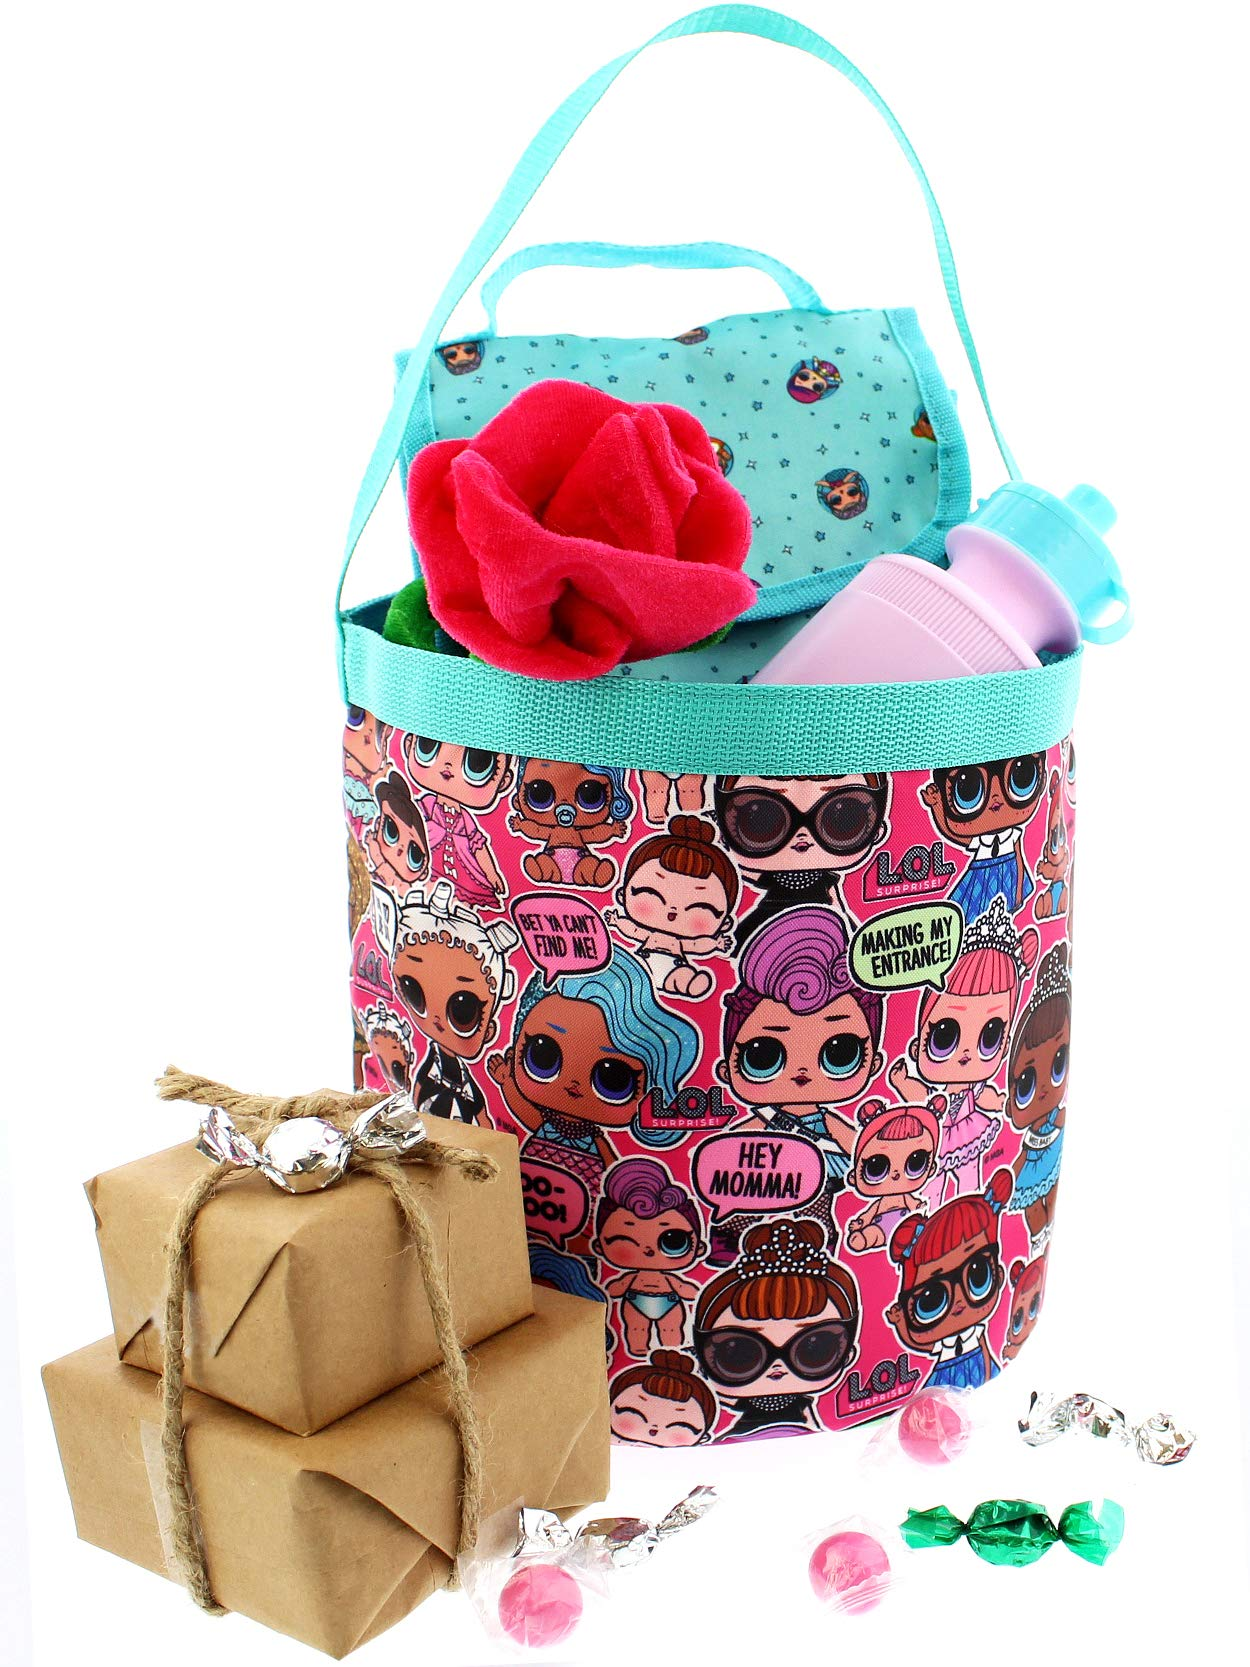 L.O.L. Surprise! Girls Collapsible Nylon Beach Bucket Toy Storage Gift Tote Bag (One Size, Pink) by L.O.L. Surprise! (Image #4)